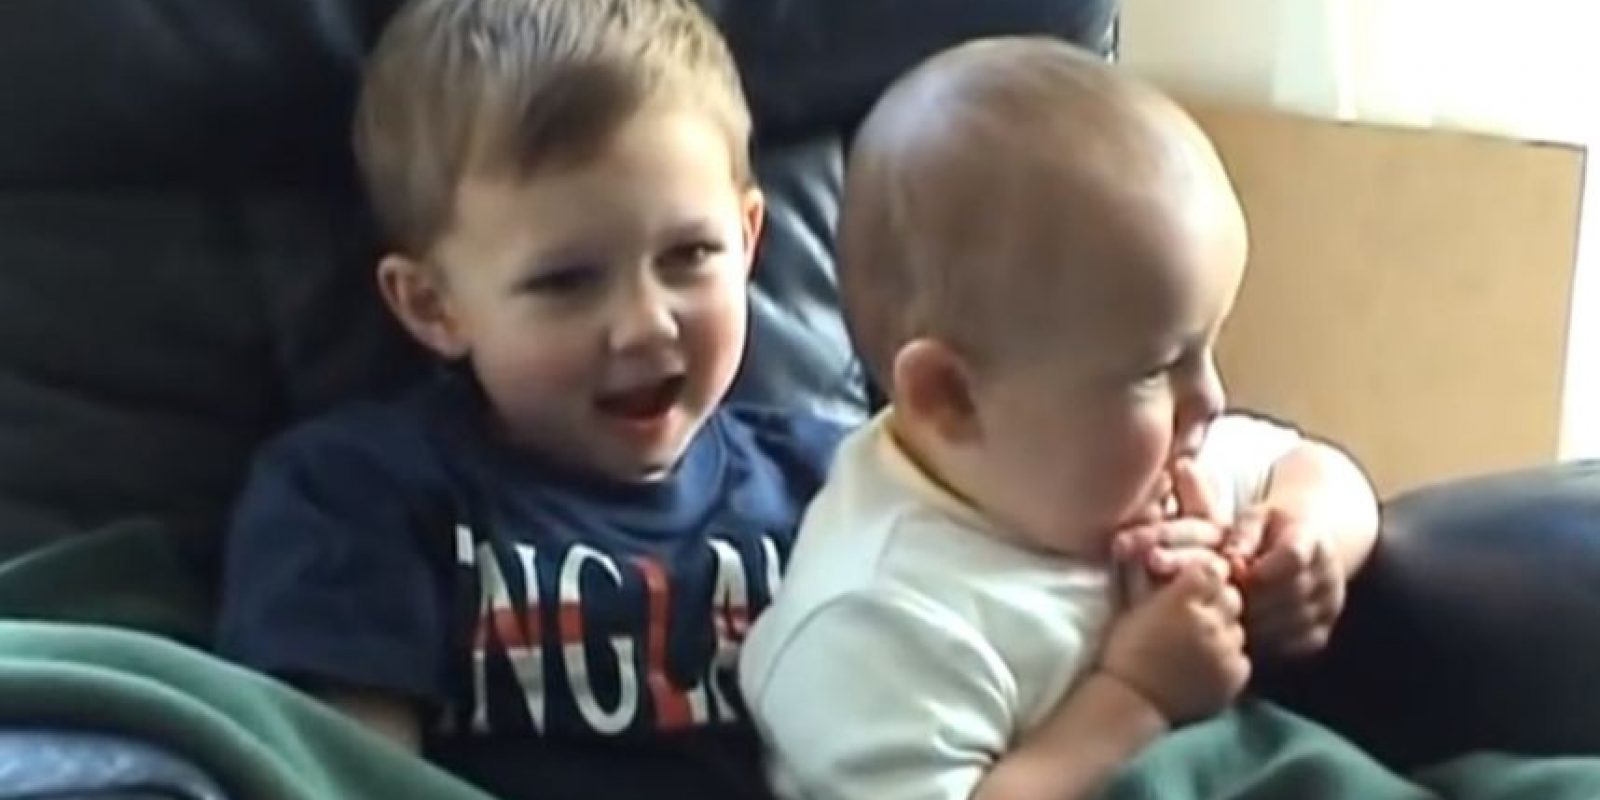 Los hermanos Harry y Charlie Blogging. Foto: YouTube